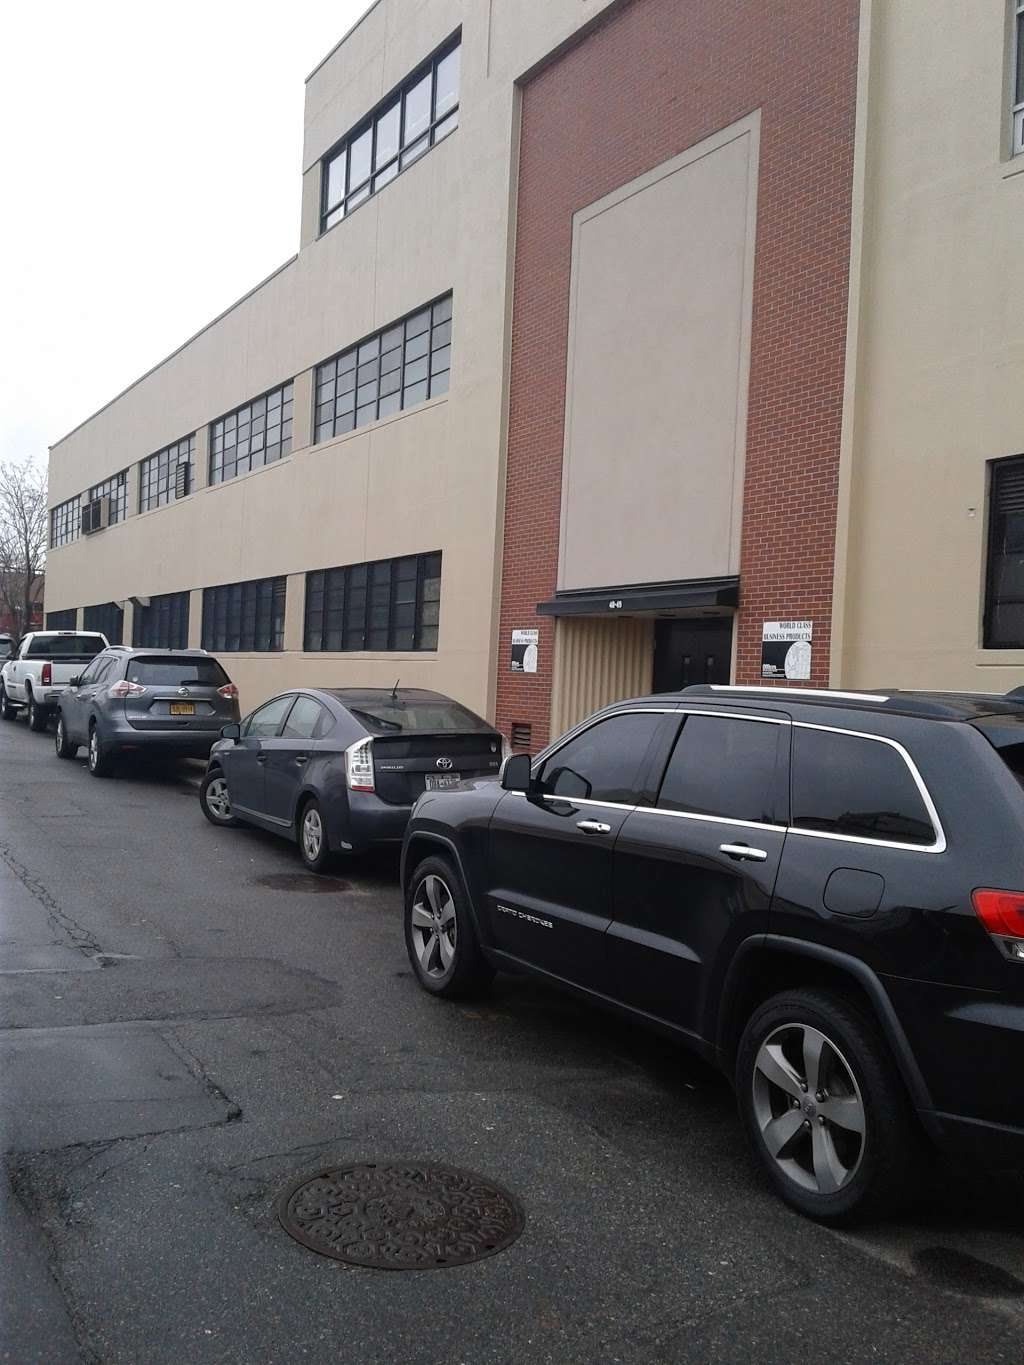 Housing Works Thrift Warehouse - store  | Photo 6 of 10 | Address: 48-49 35th St, Long Island City, NY 11101, USA | Phone: (718) 786-6160